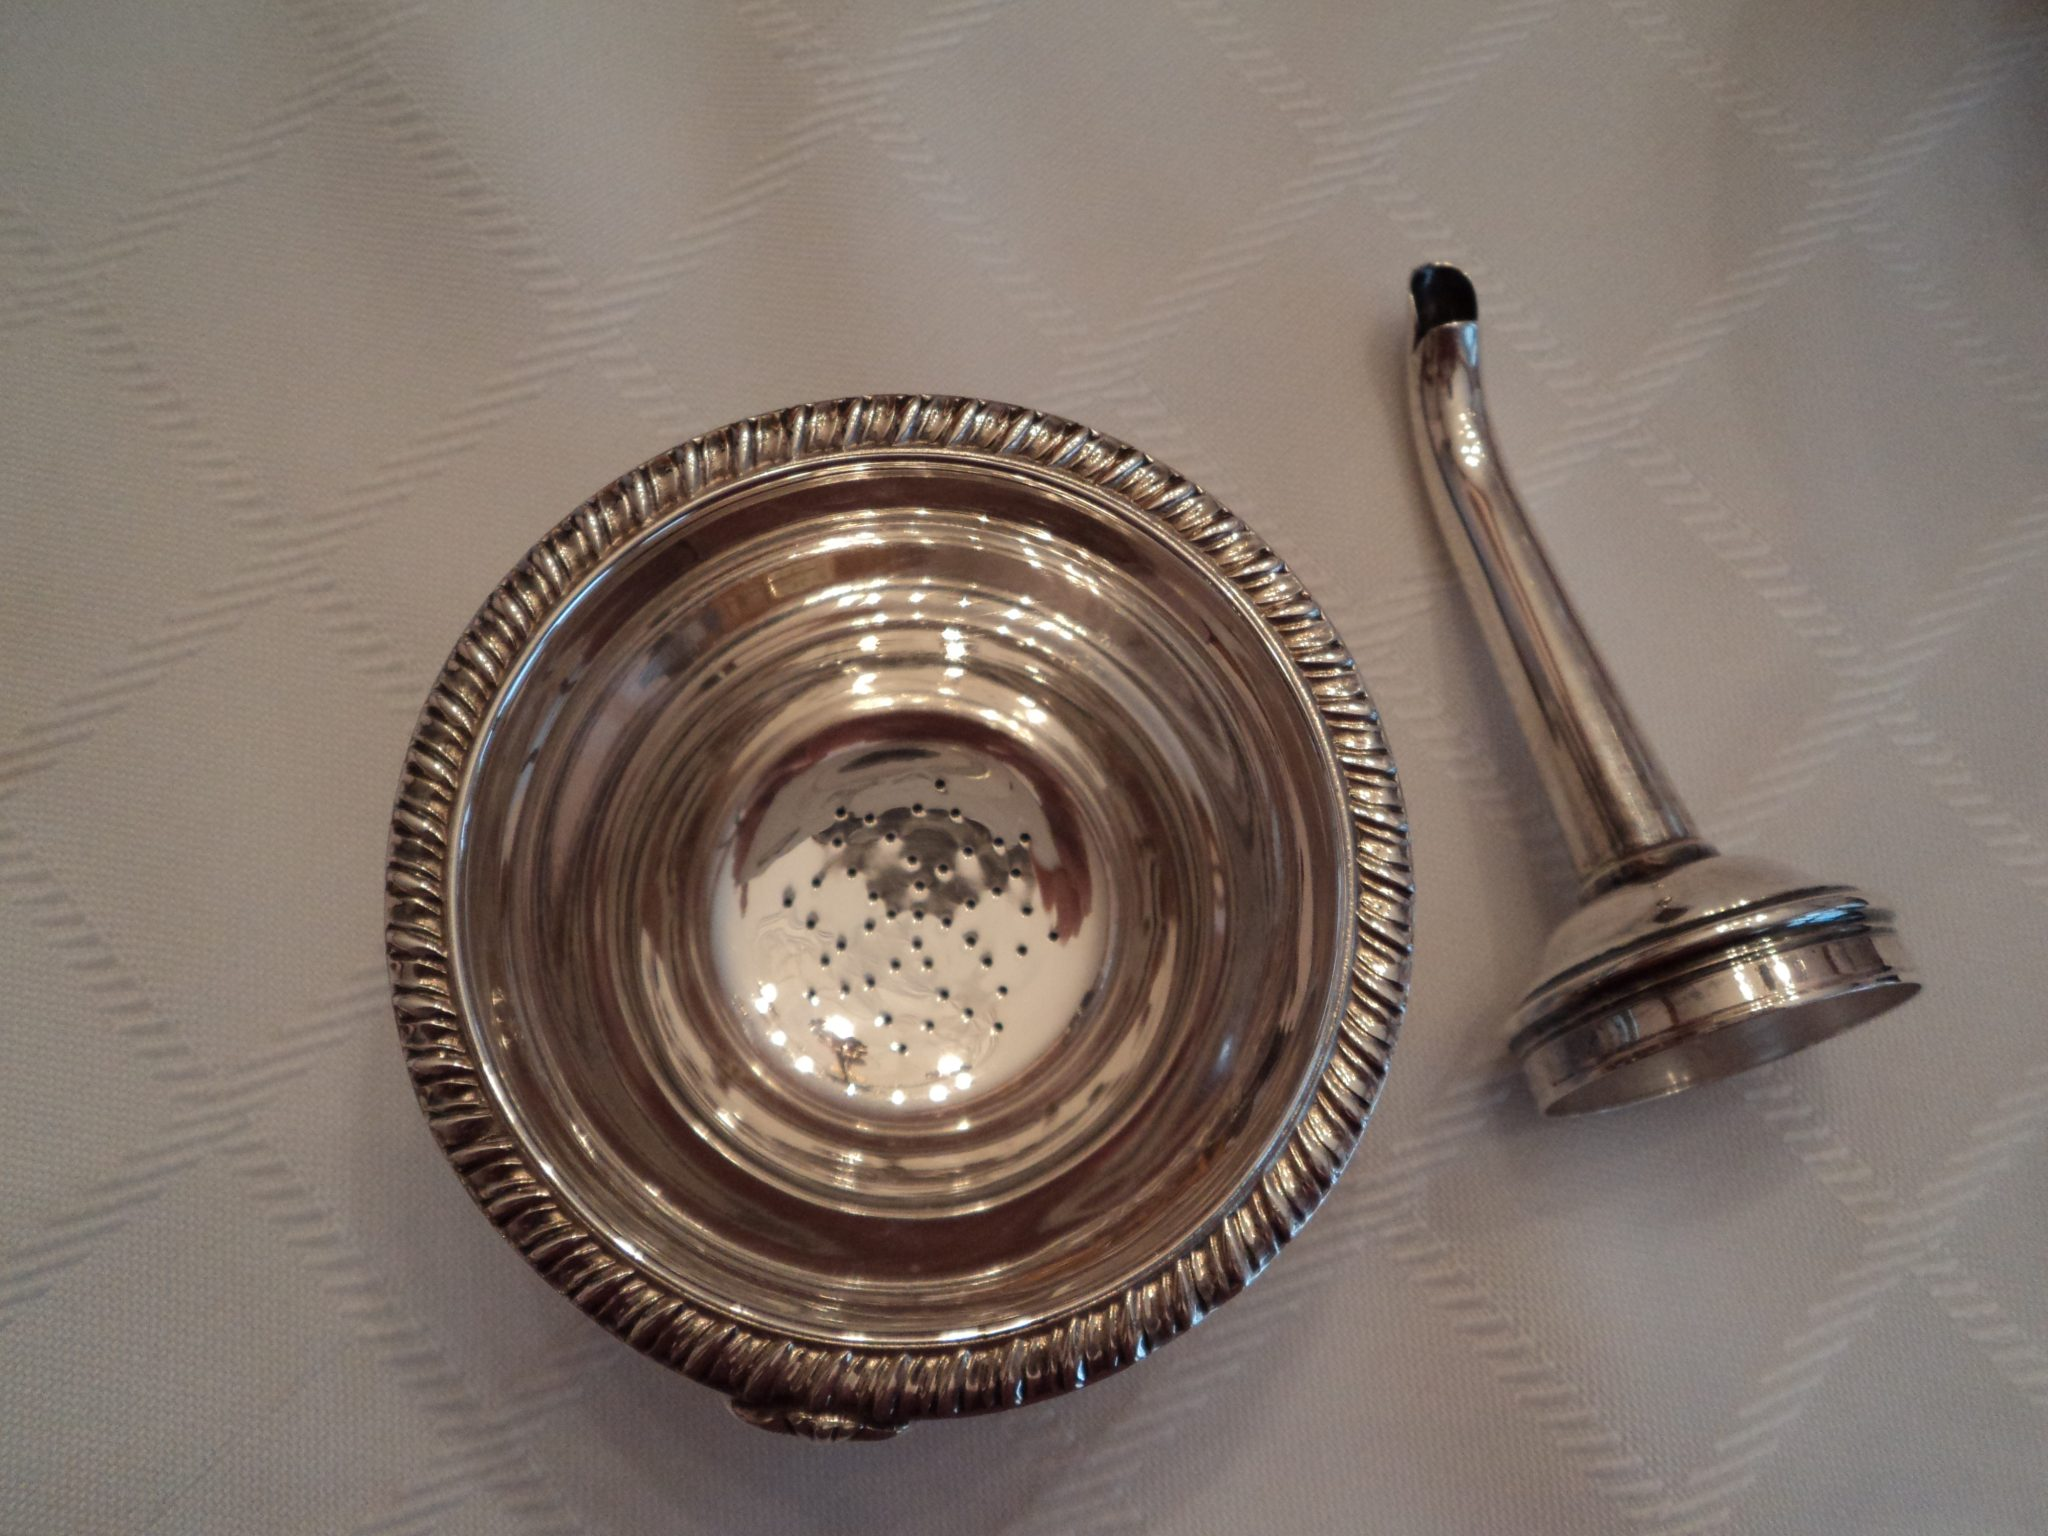 two-piece silver wine decanting funnel